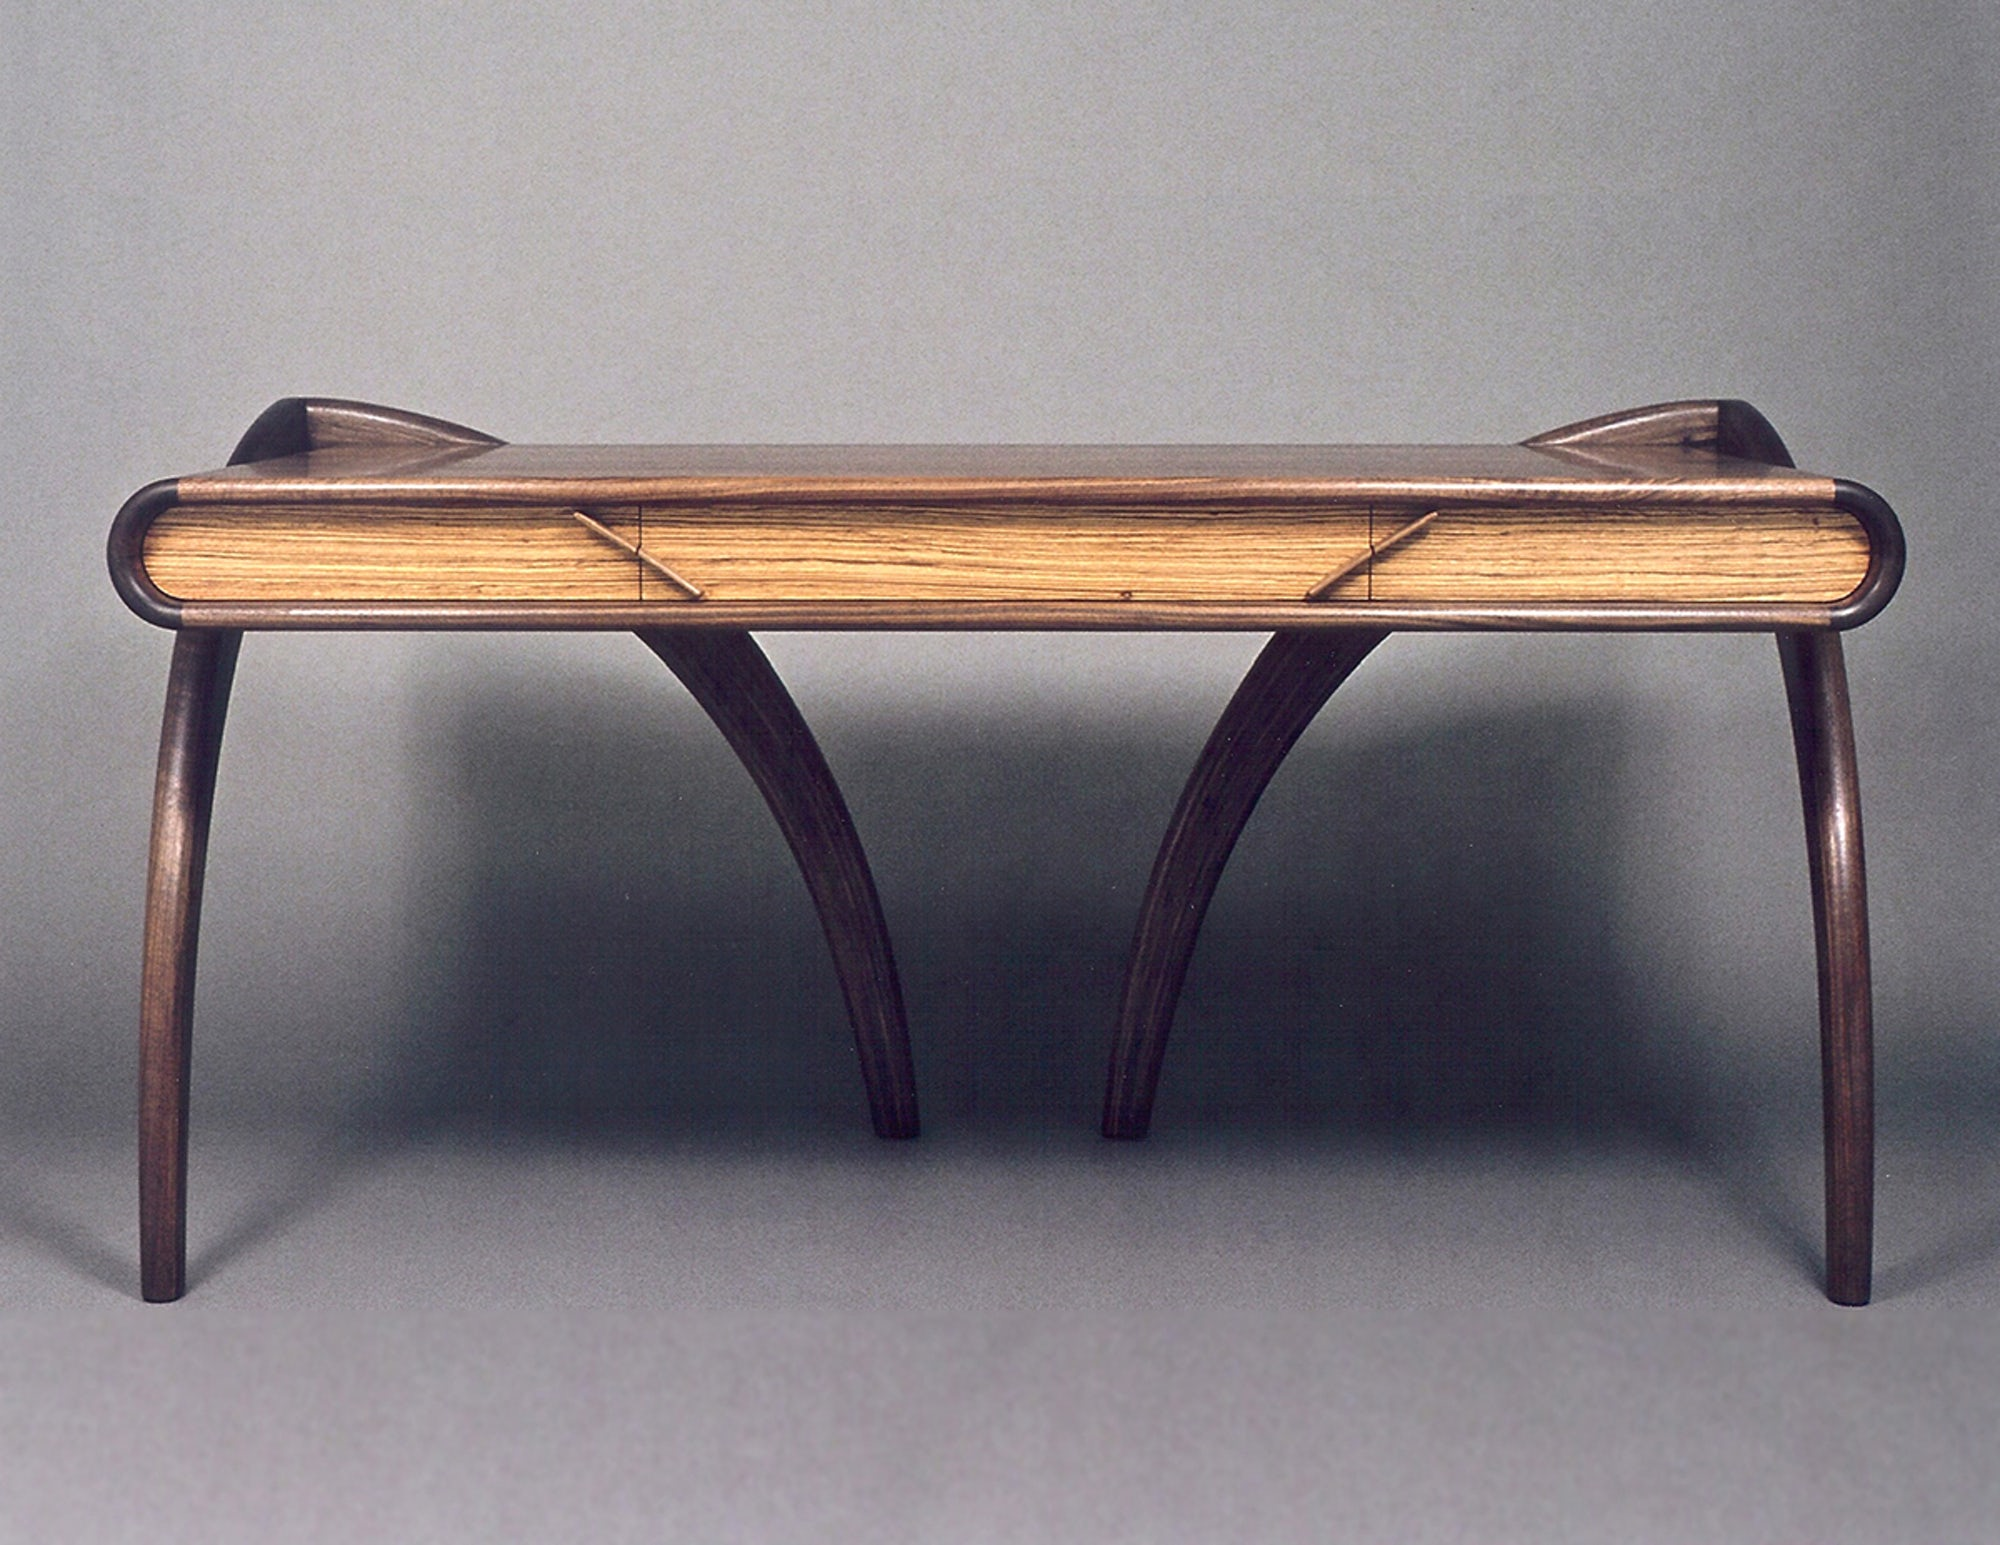 Angled Arch Writing Desk by Todd Ouwehand